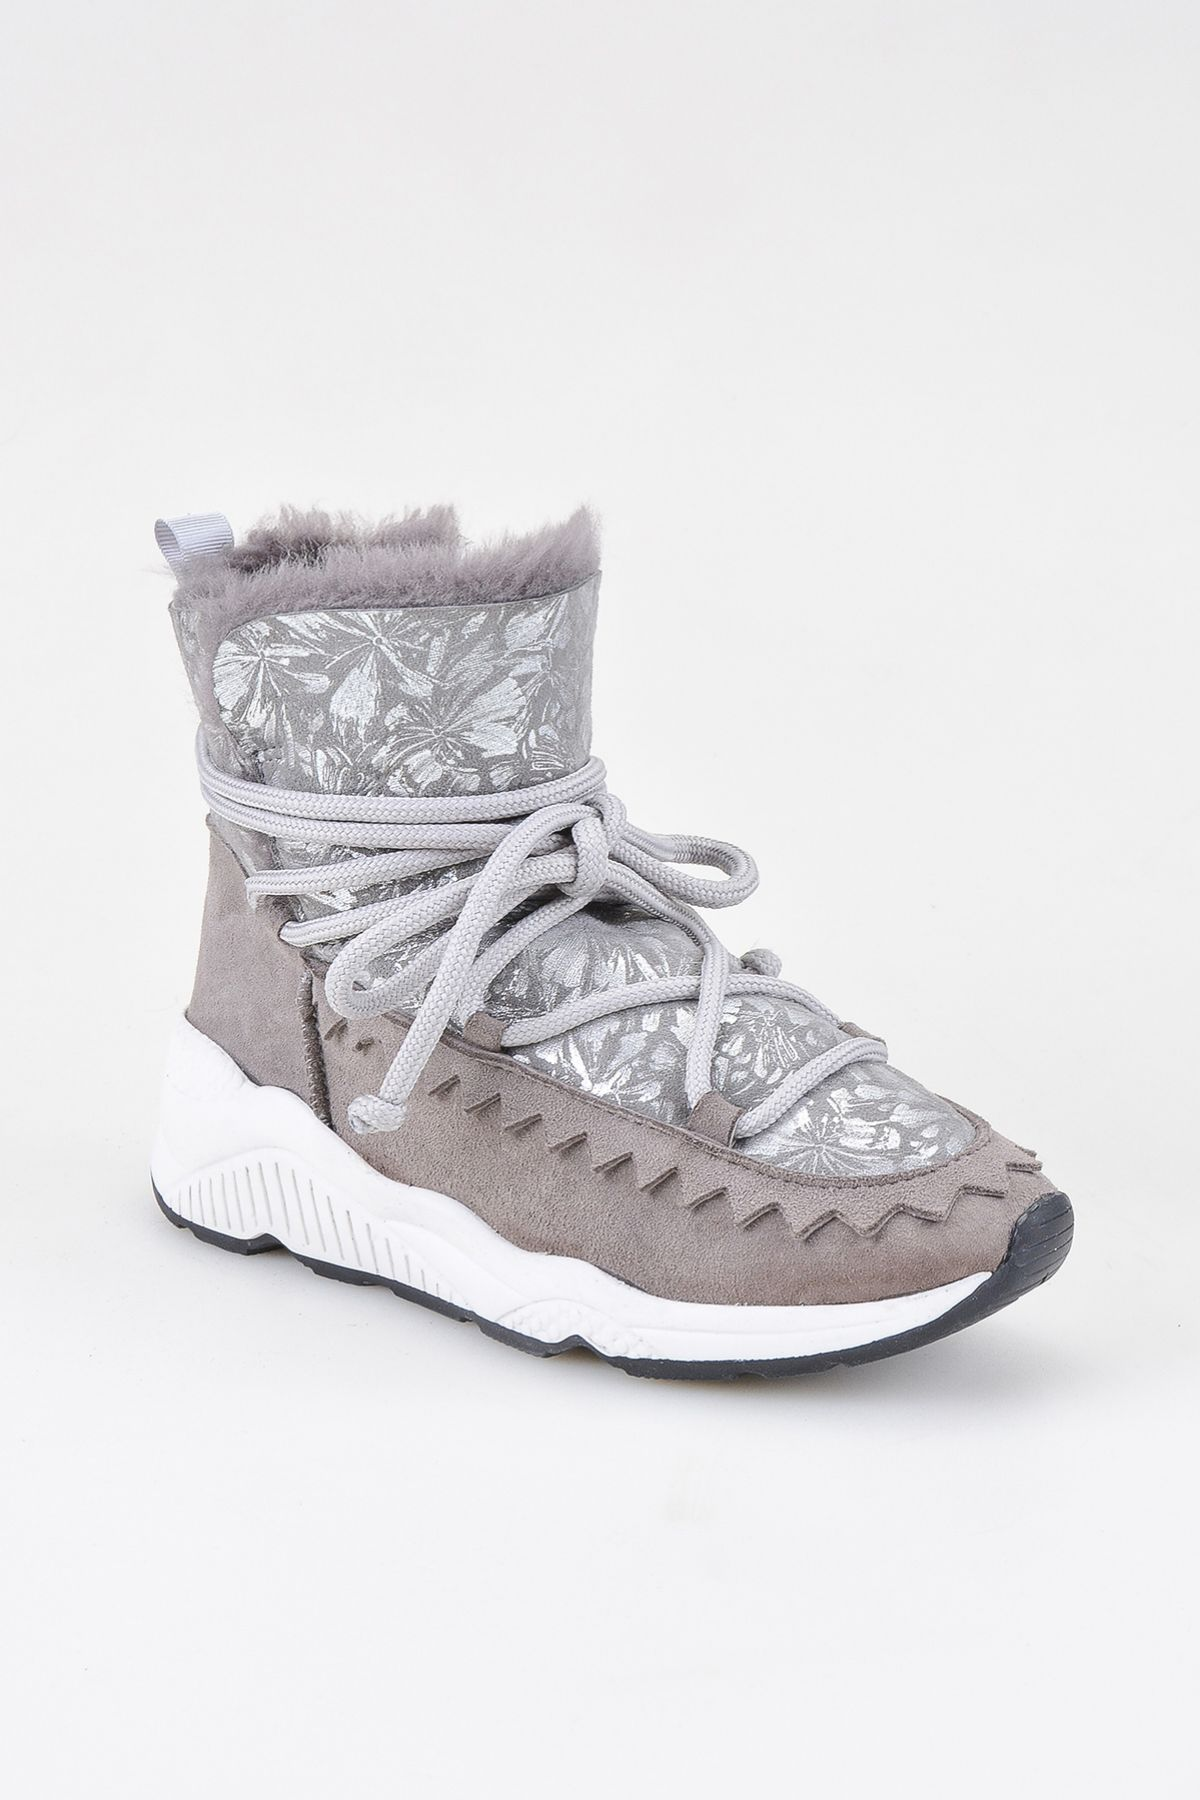 Pegia Laced Women Shearling Boots With Flower Pattern 195012 Gray